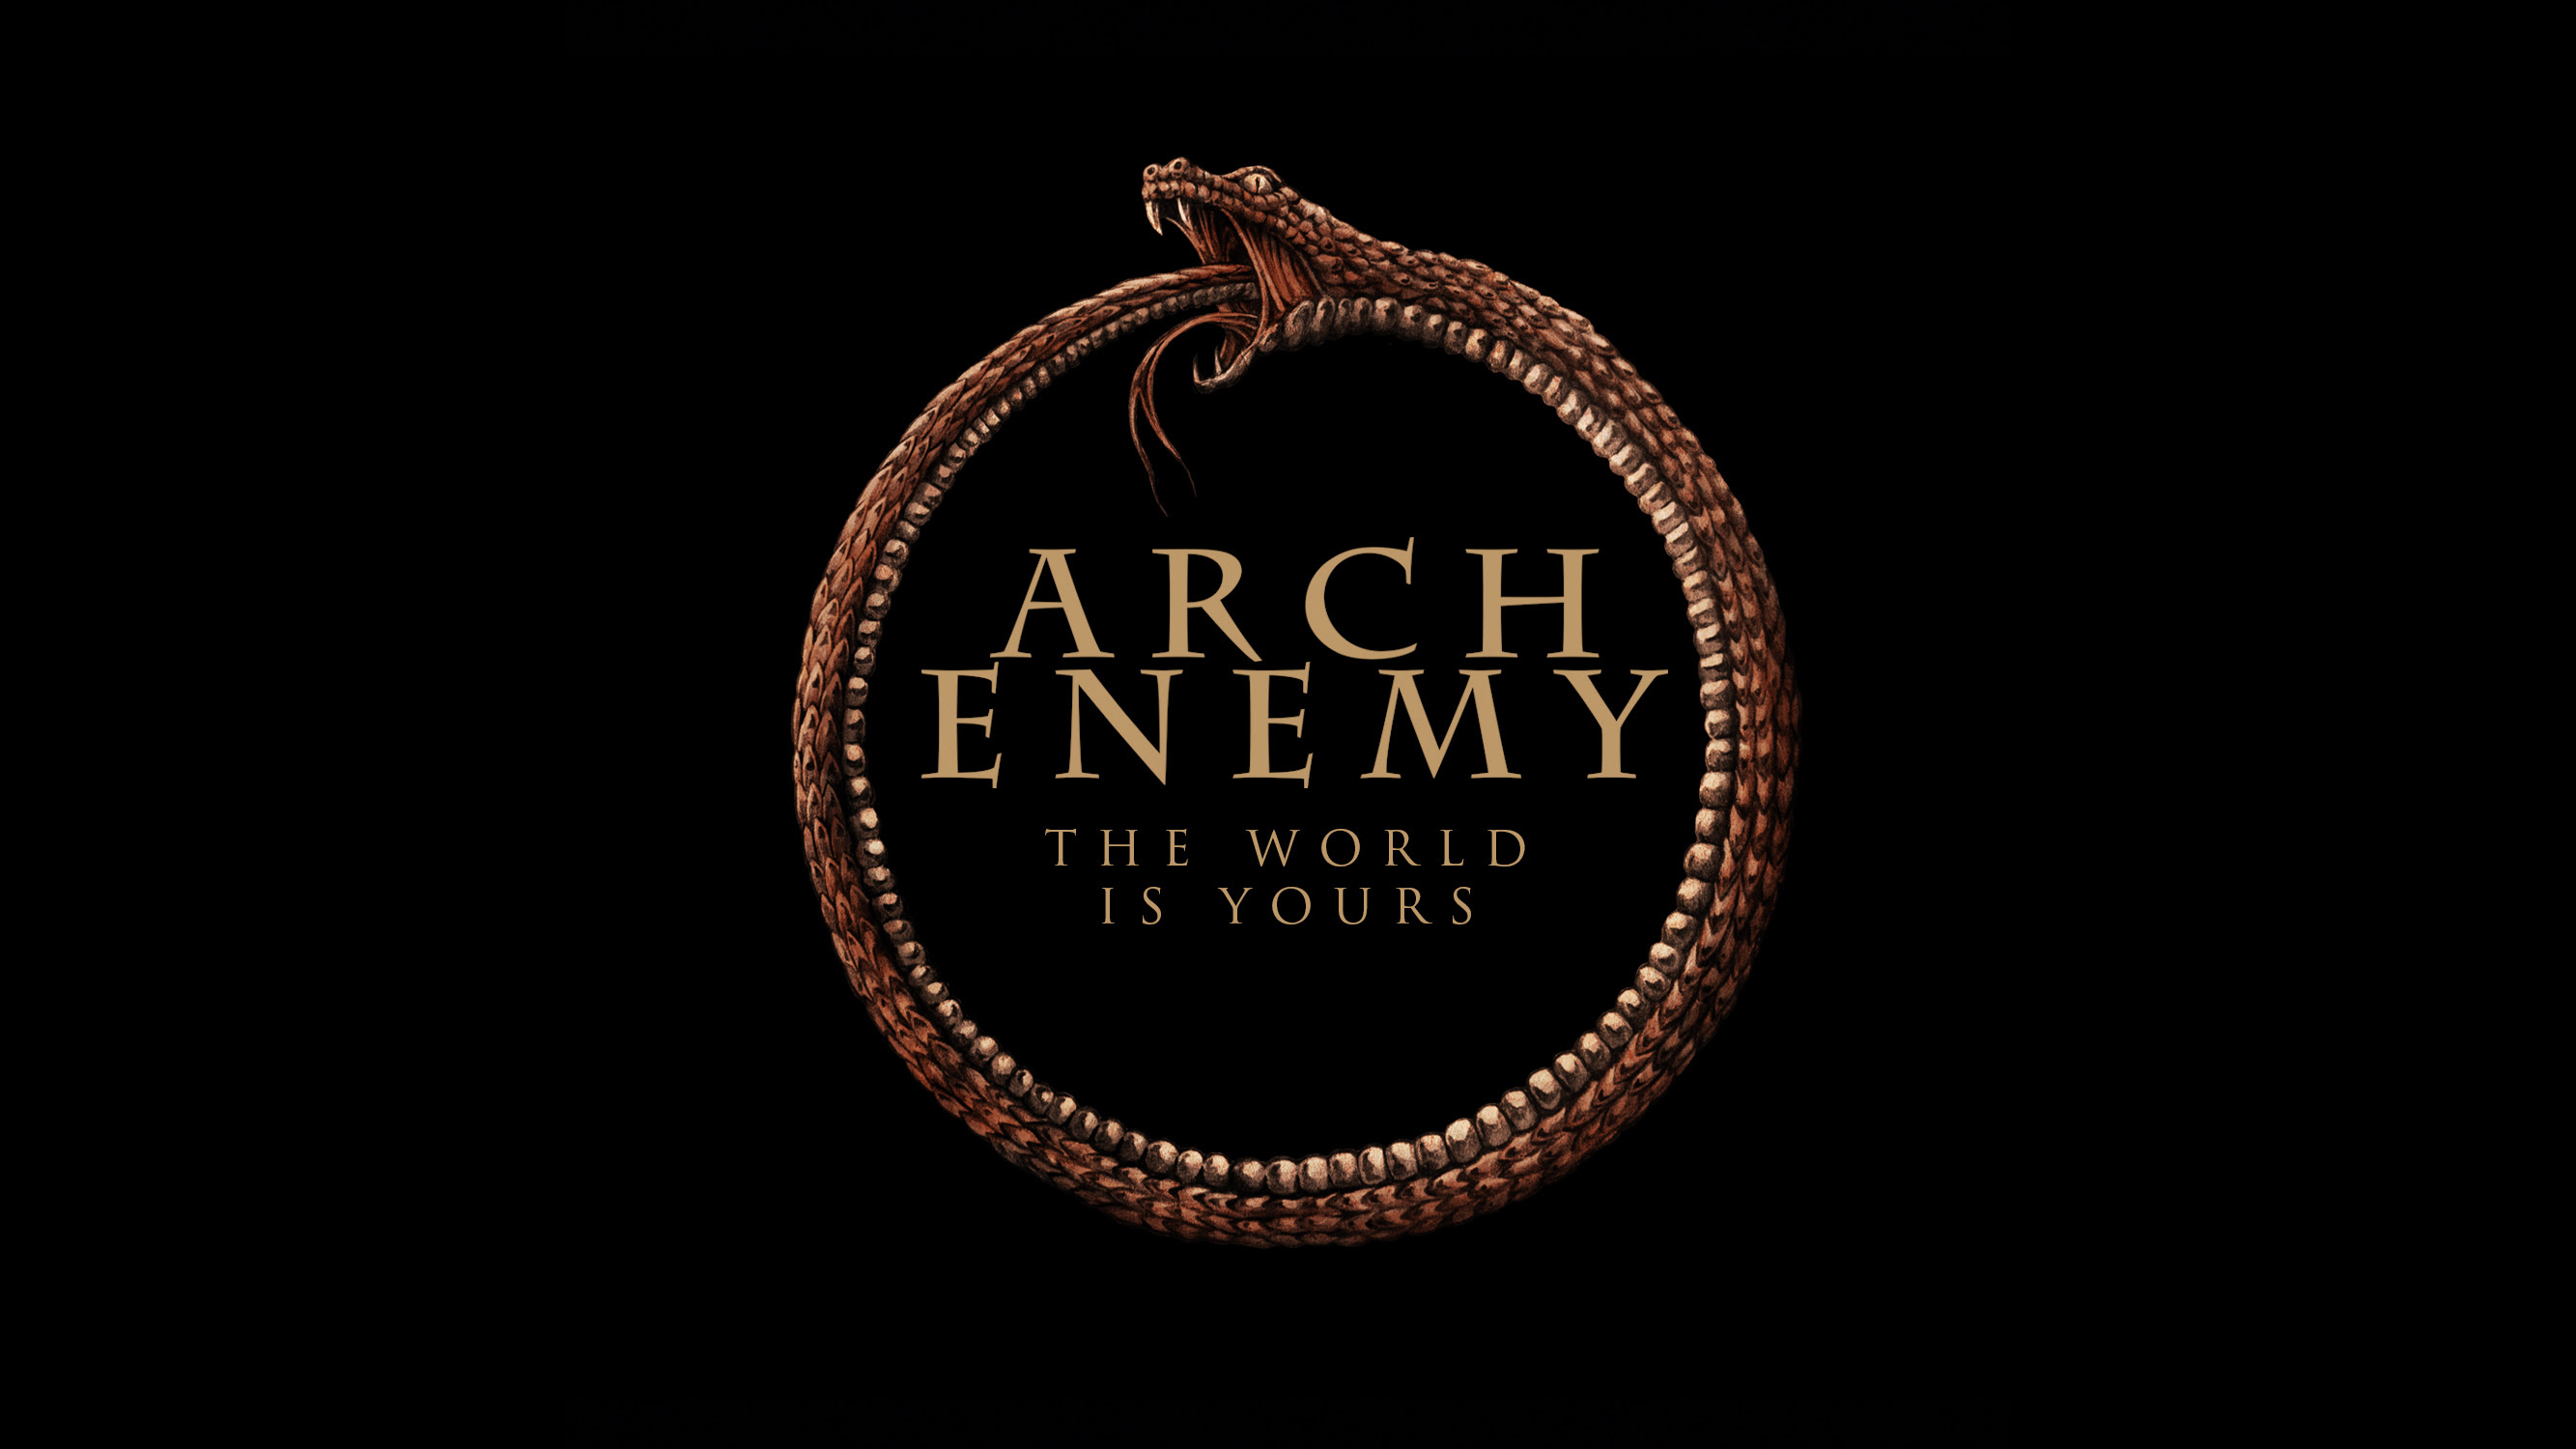 Arch Enemy The World Is Yours Wallpaper By Disturbedkorea On